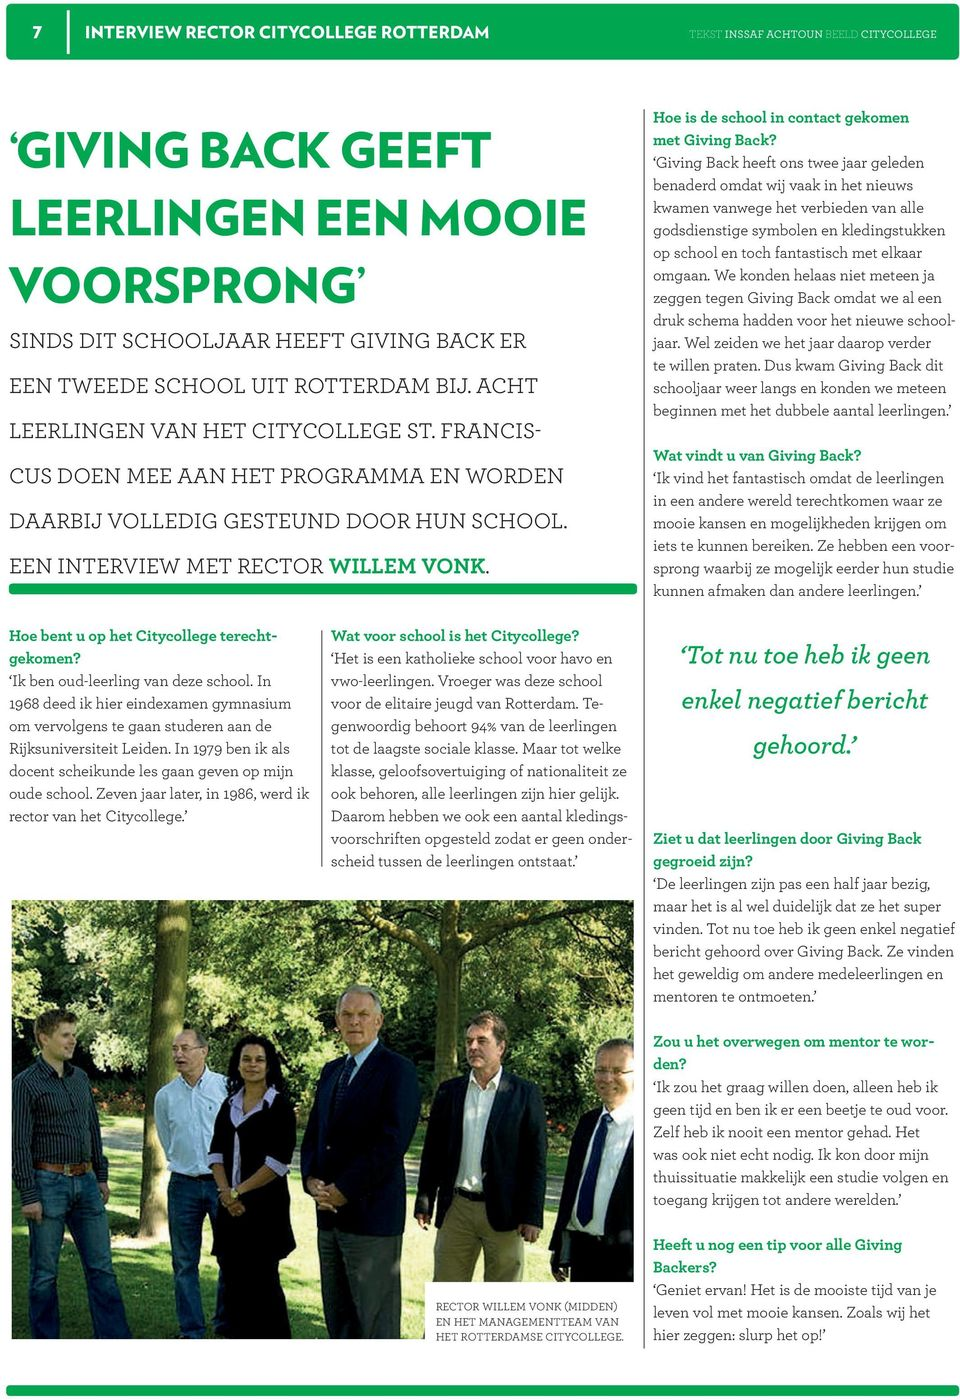 een interview met rector Willem Vonk. Hoe is de school in contact gekomen met Giving Back?